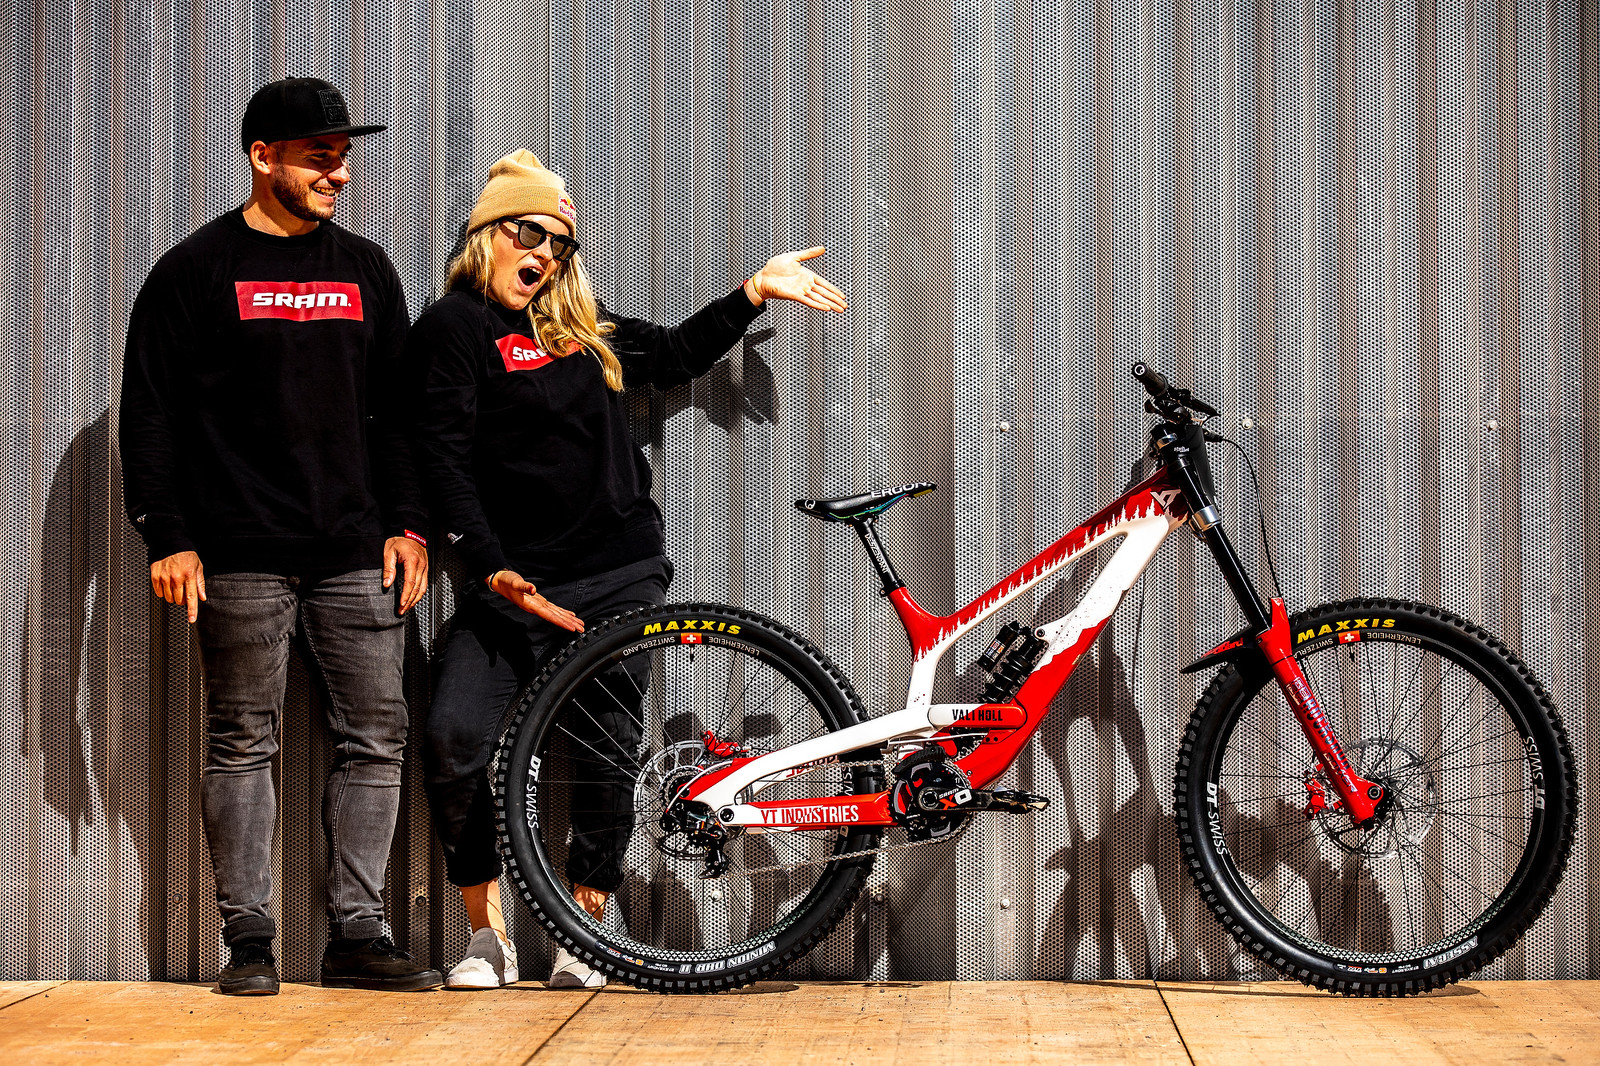 Vali and Matt with the World Champs Bike - WORLD CHAMPS BIKE - Vali Holl's YT TUES - Mountain Biking Pictures - Vital MTB